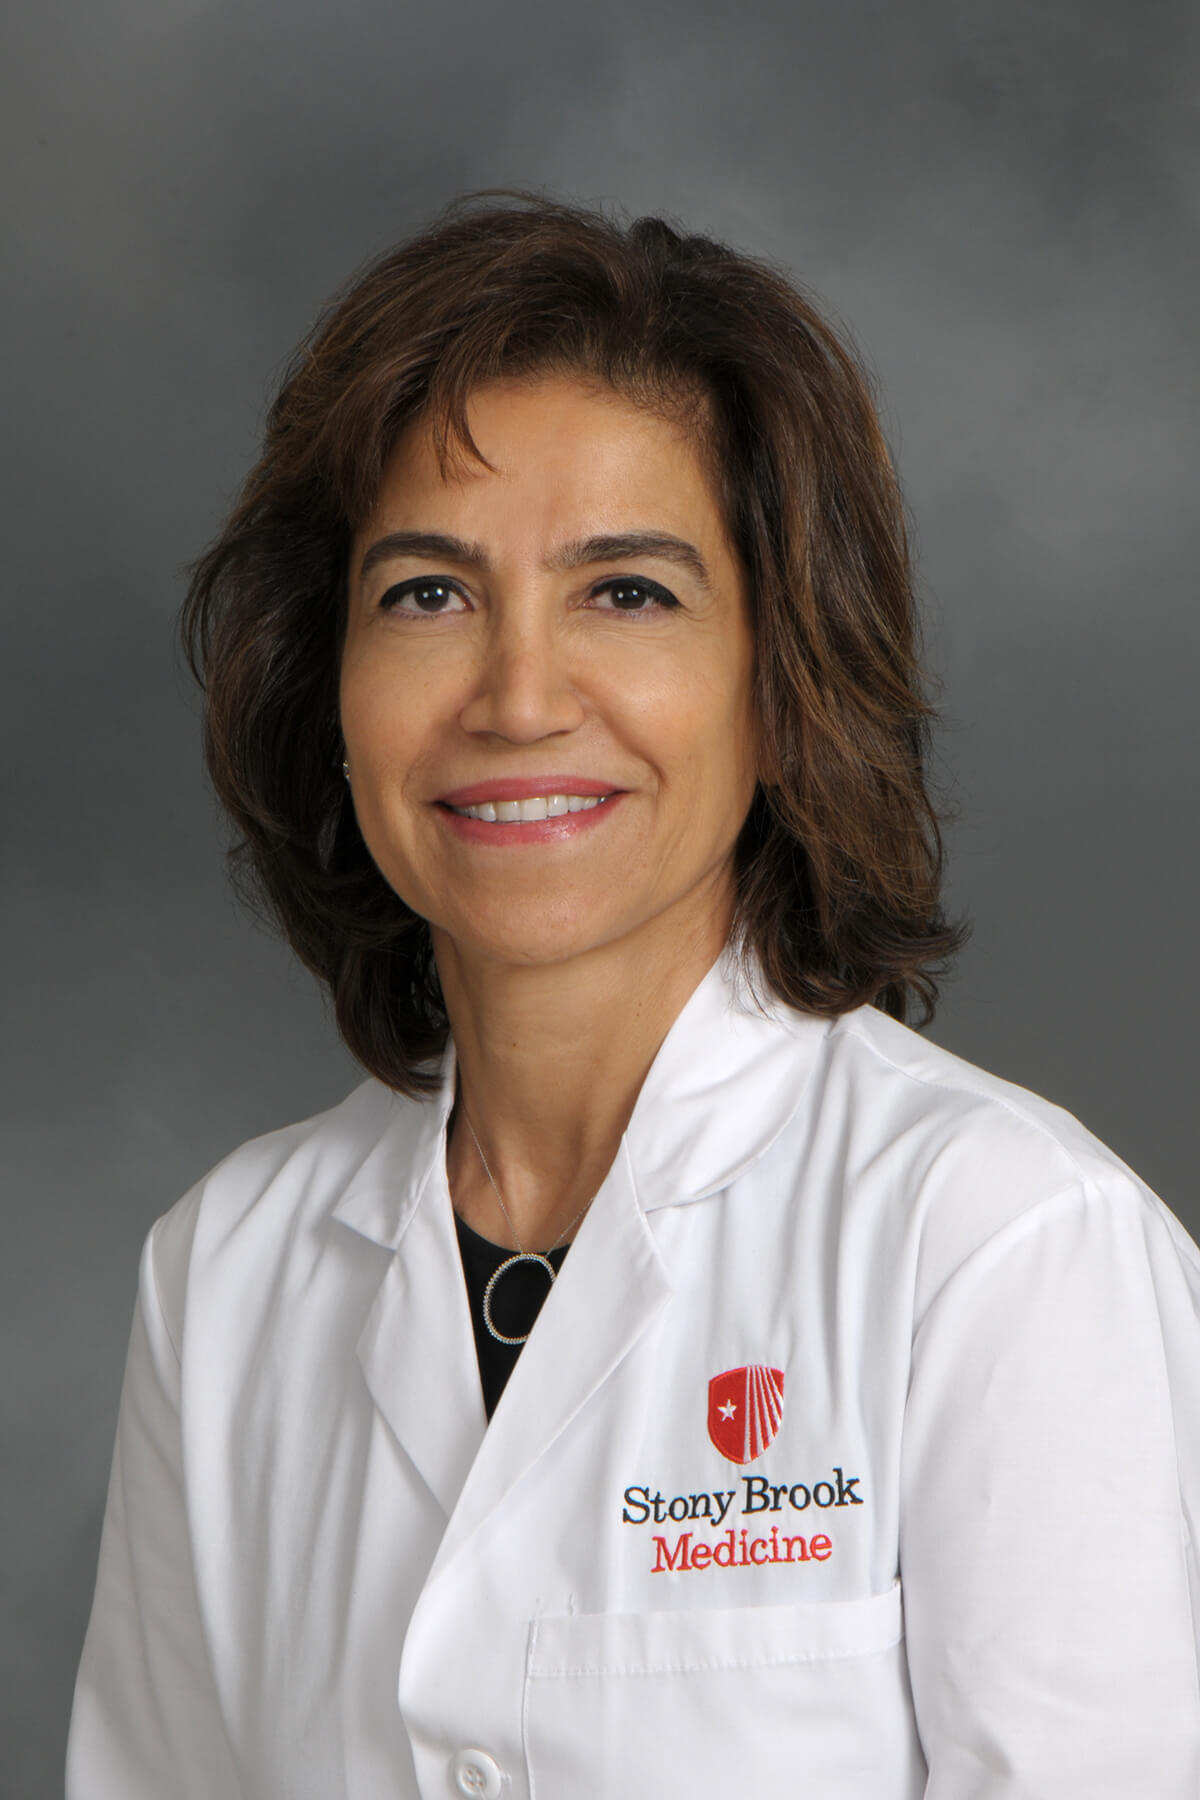 Anissa Abi-Dargham, M.D., expert in molecular imaging, pharmacology, schizophrenia and addiction